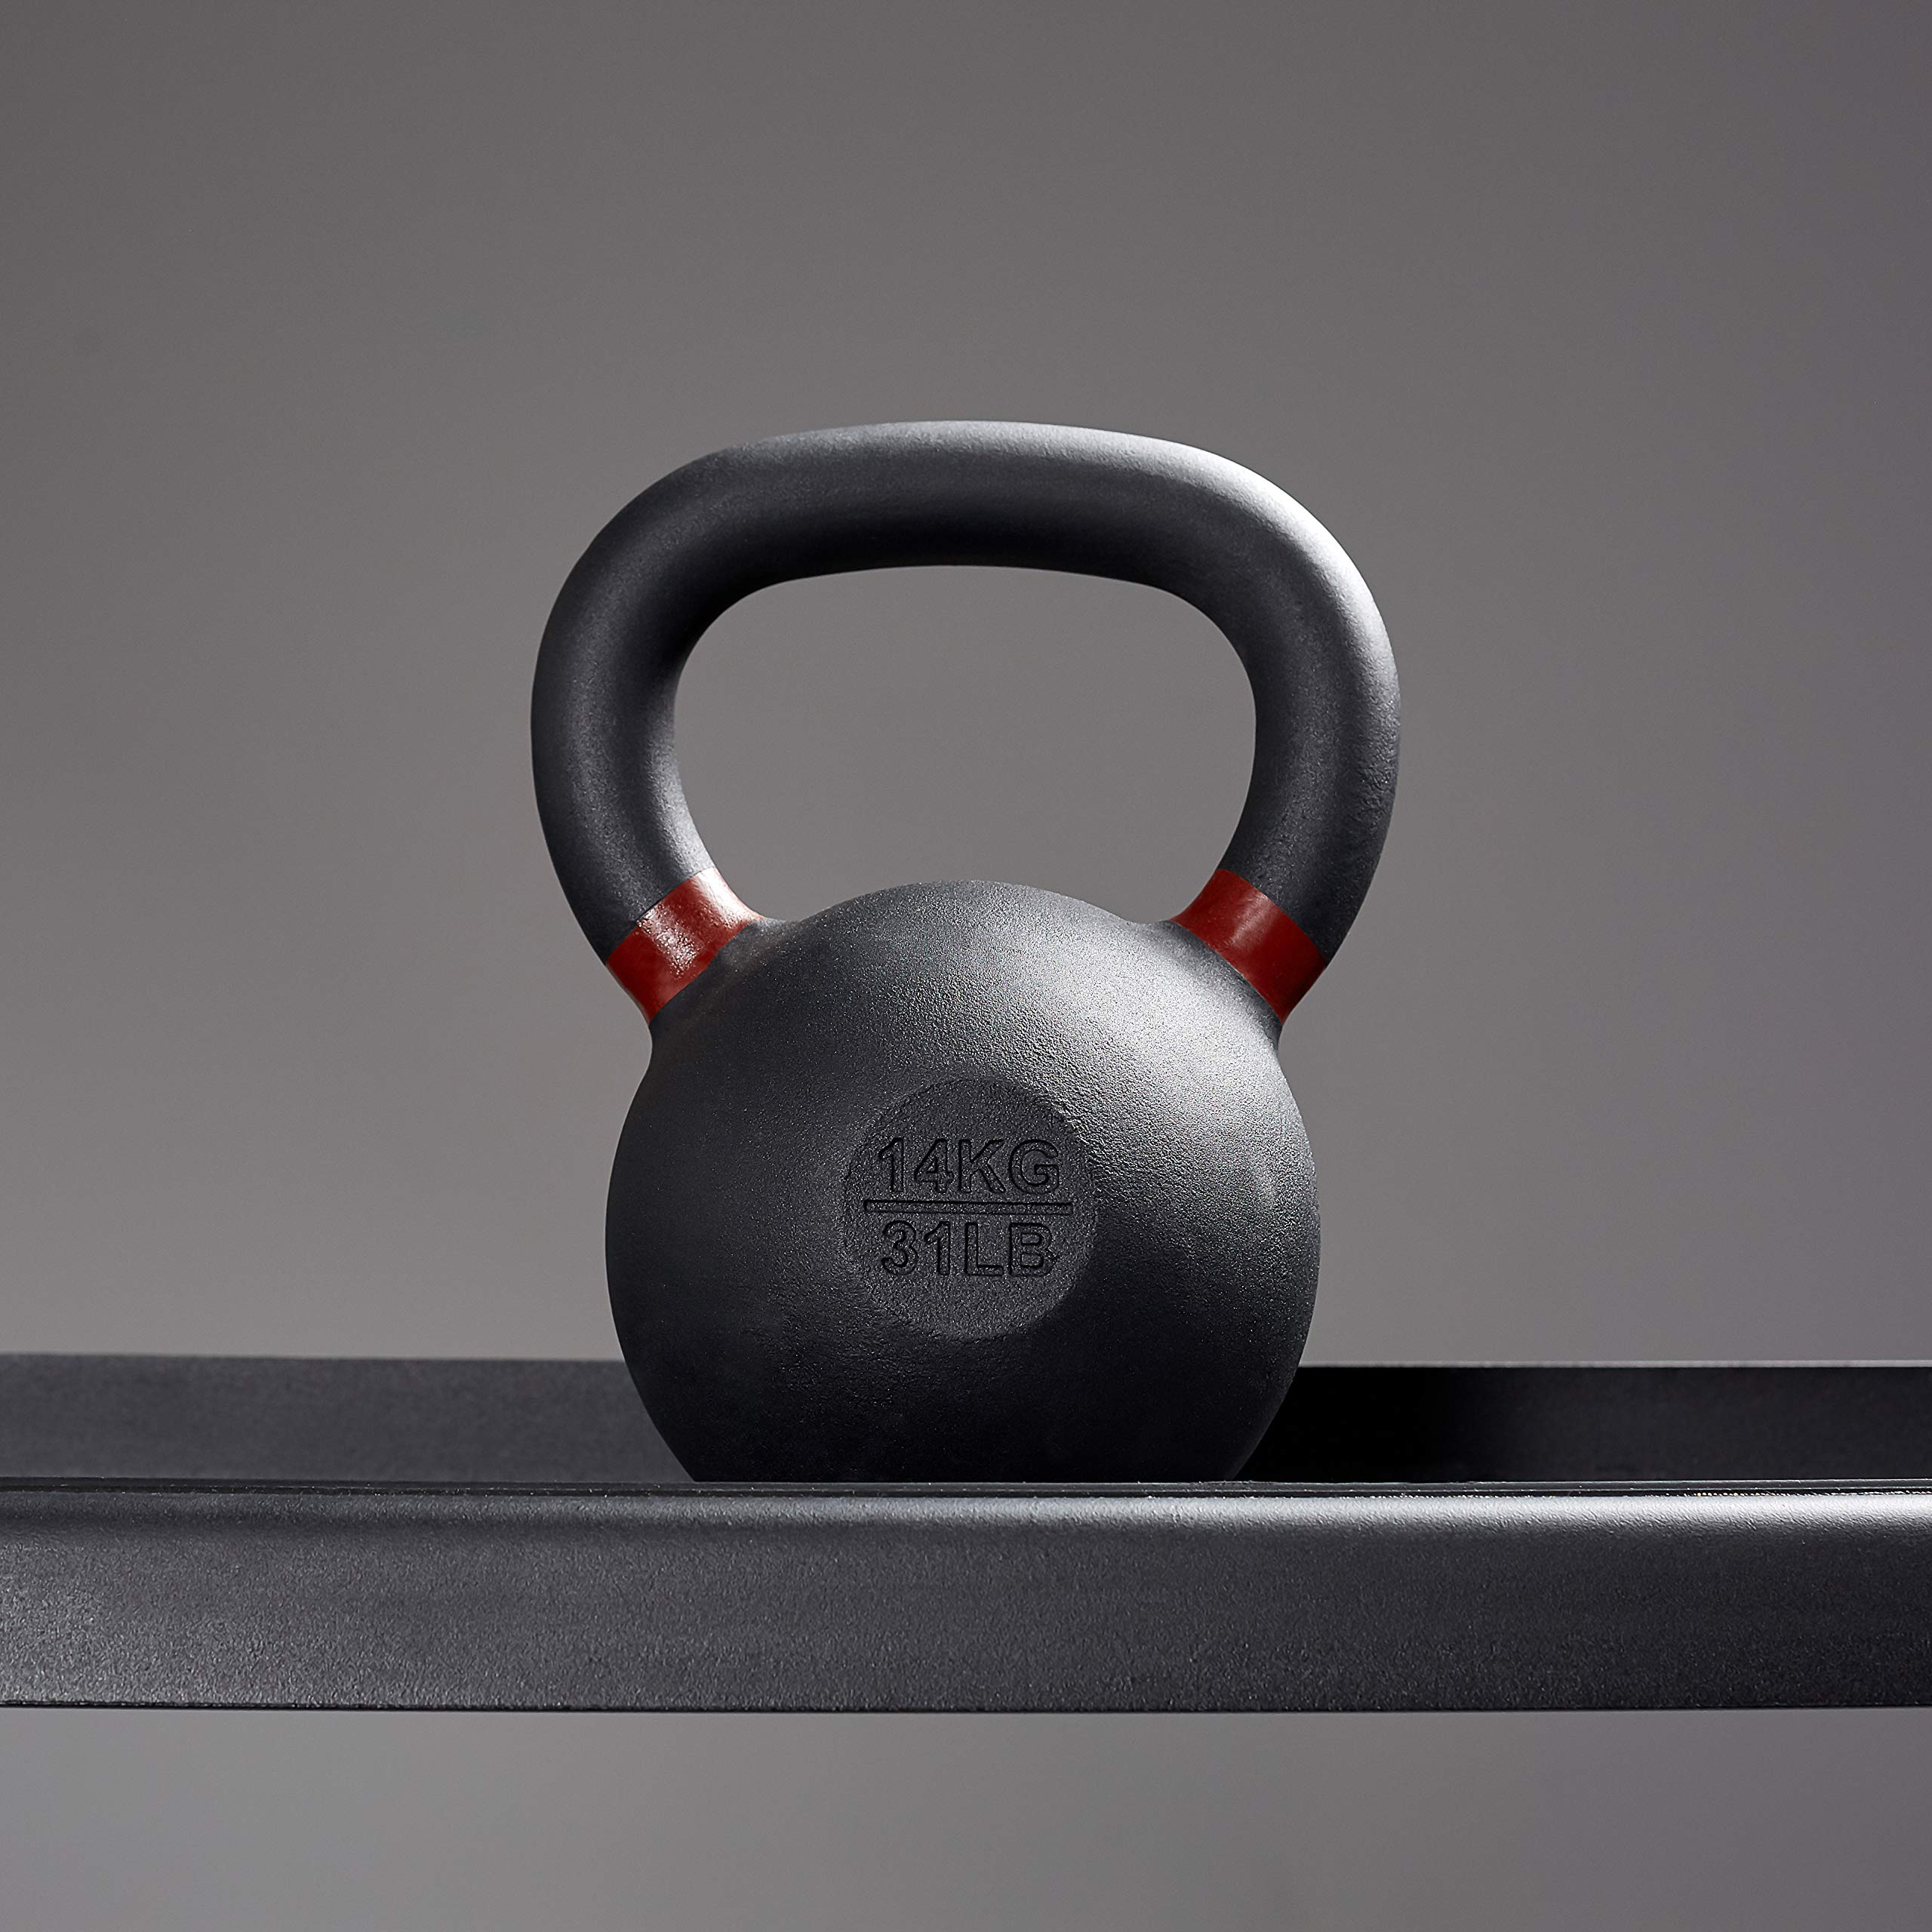 Rep 14 kg Kettlebell for Strength and Conditioning by Rep Fitness (Image #3)